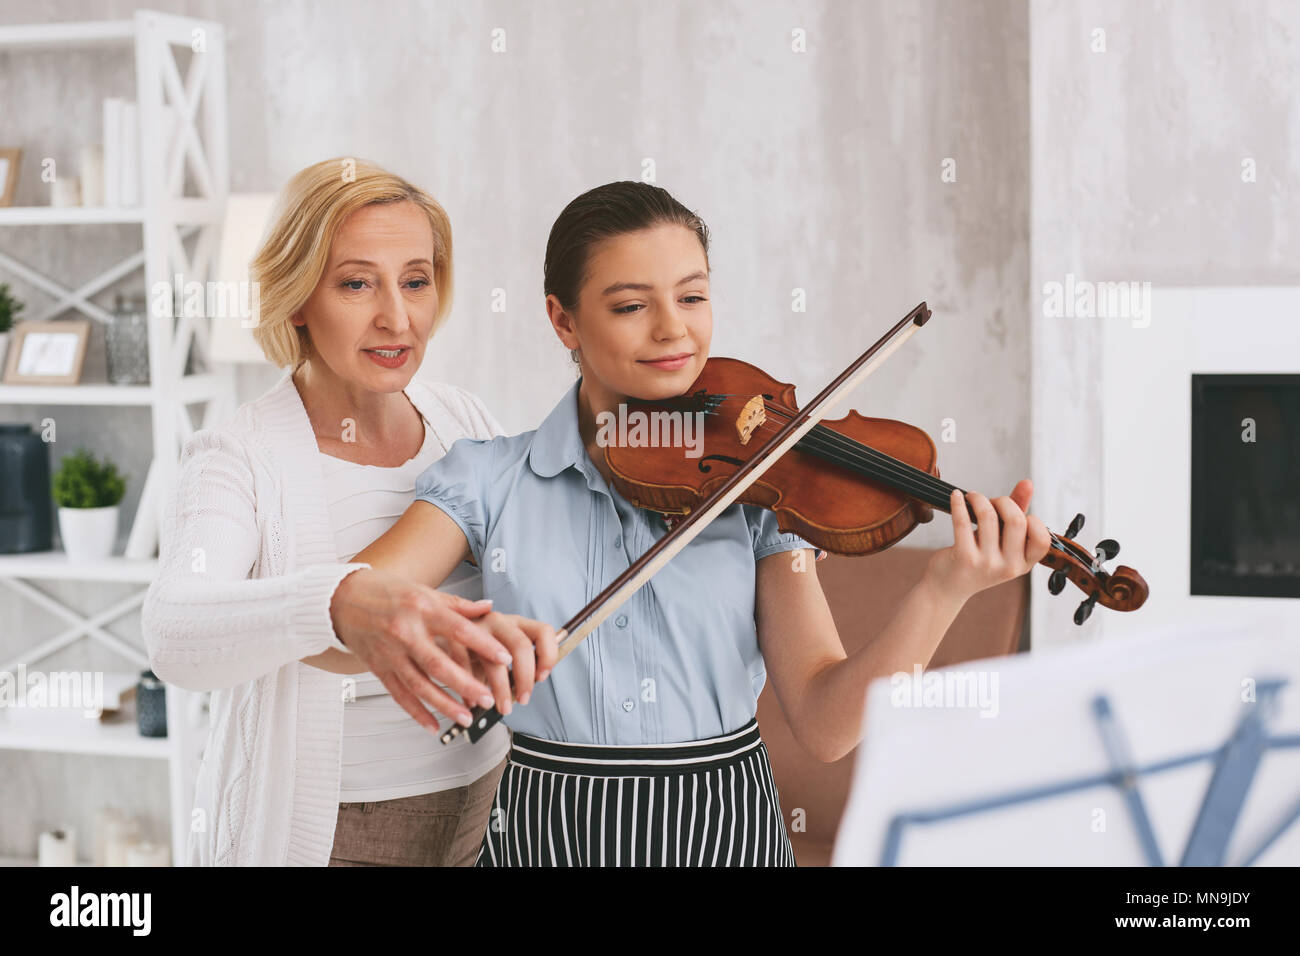 Professional violinist teaching her student - Stock Image